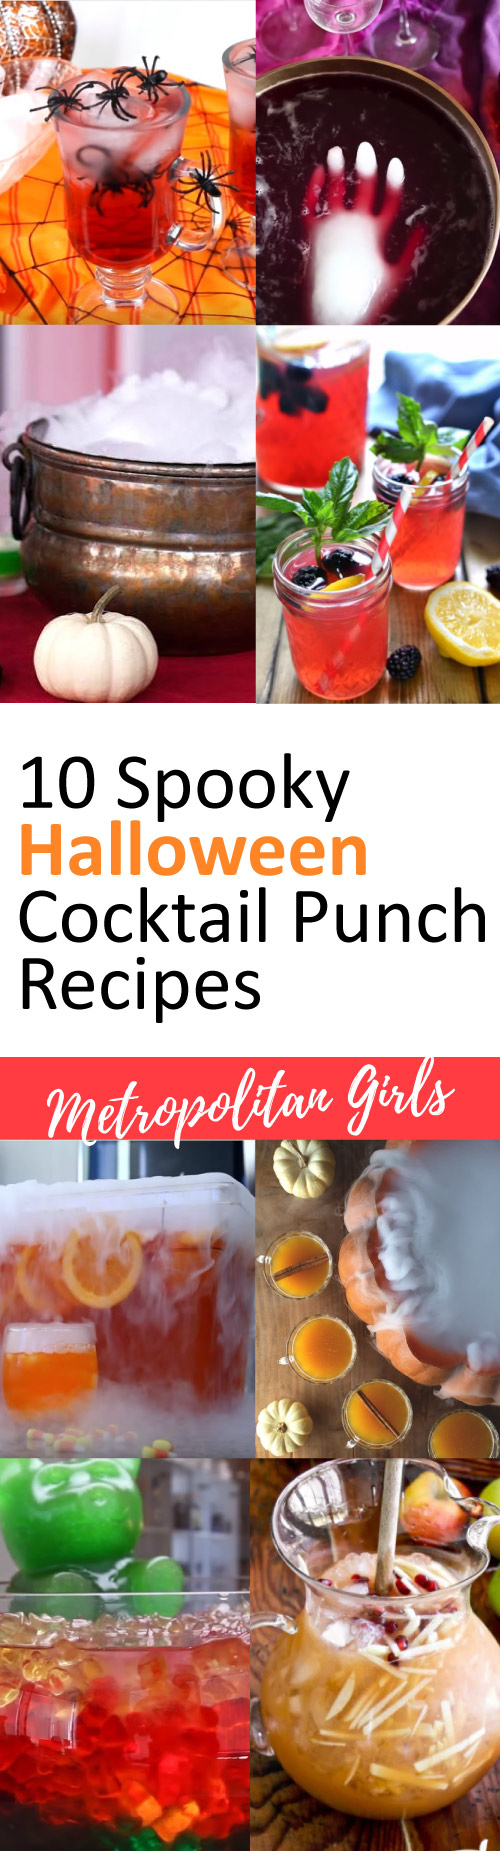 10 Spooky Halloween Cocktail Punch Recipes Metropolitan